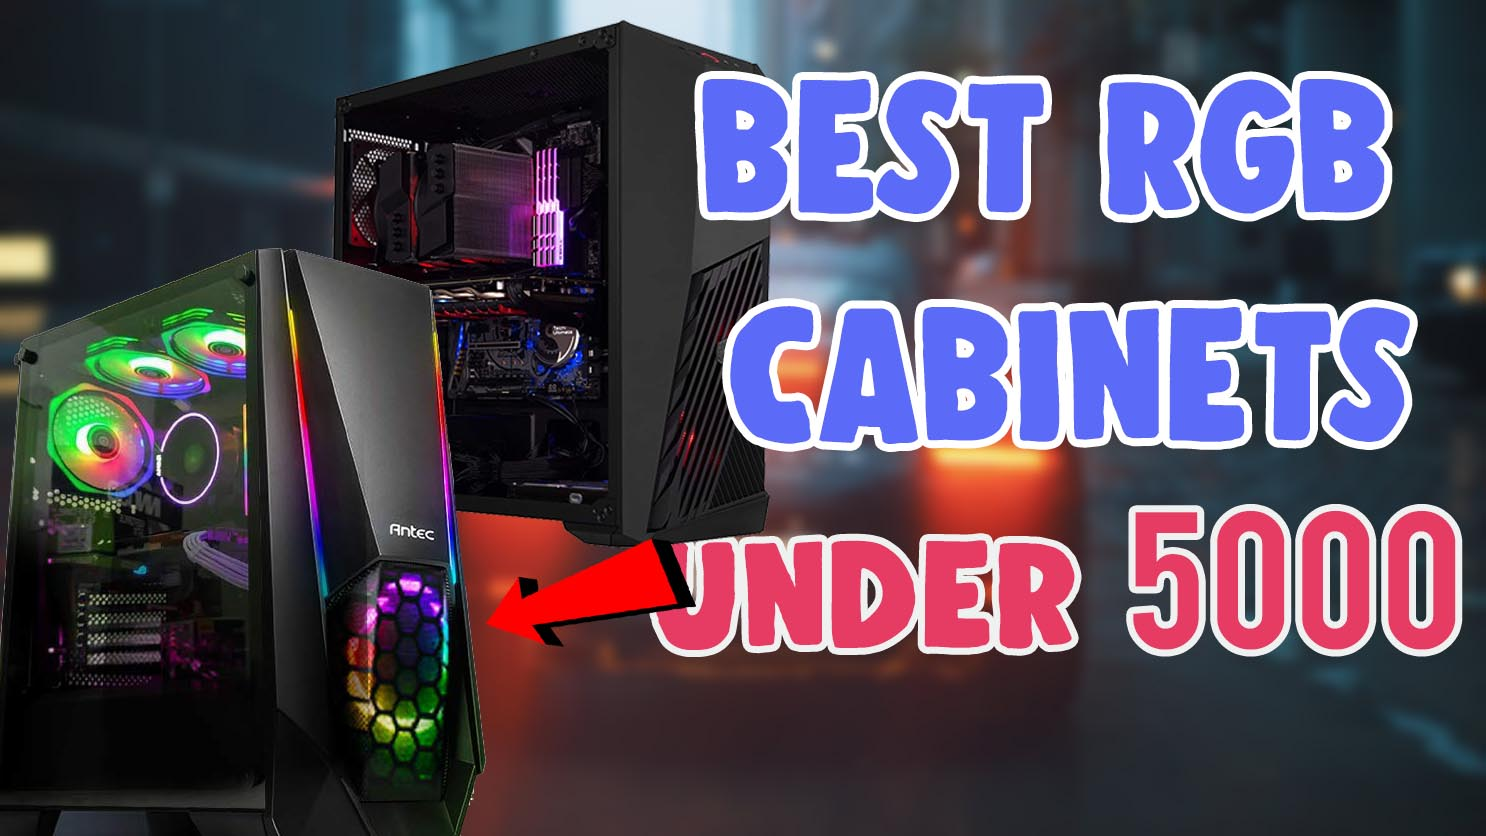 best gaming cabinet under 5000 2020 in india